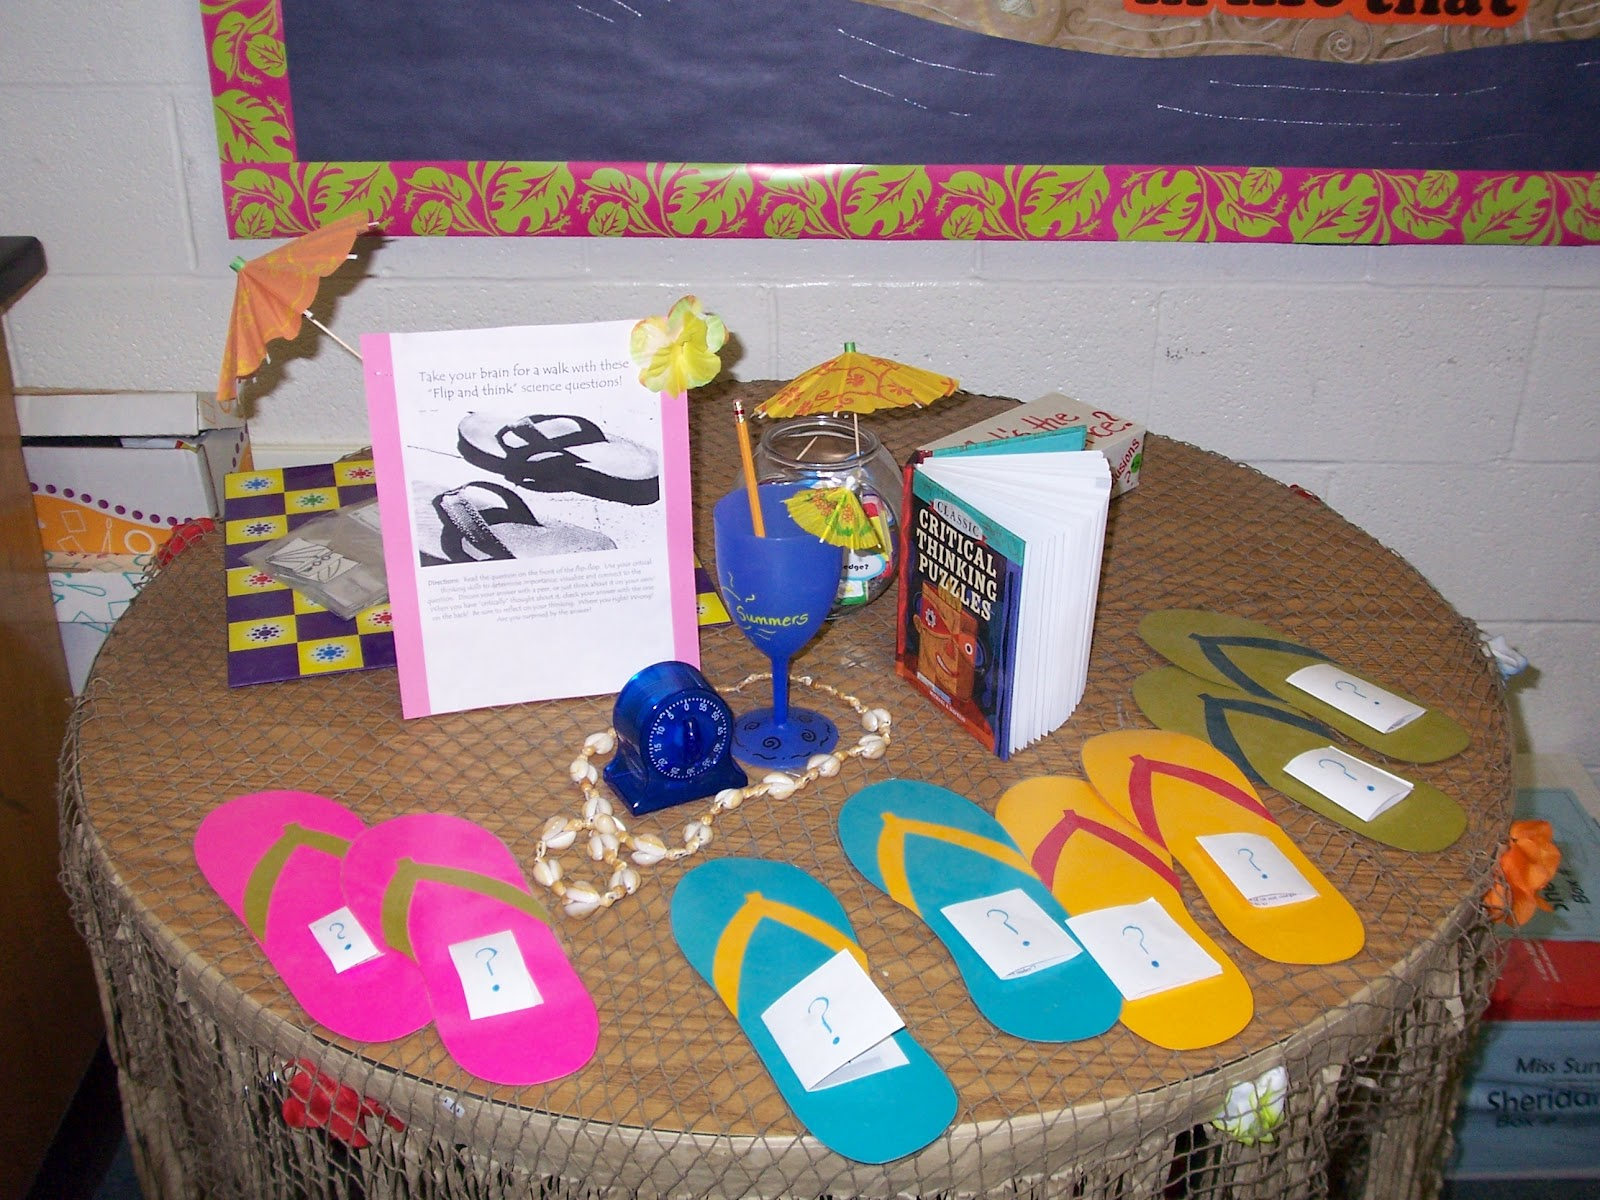 8f06d2c69 I was going through old classroom photos and found one of my favorite bulletin  boards! The flip flop challenge tasks were a hit with students.